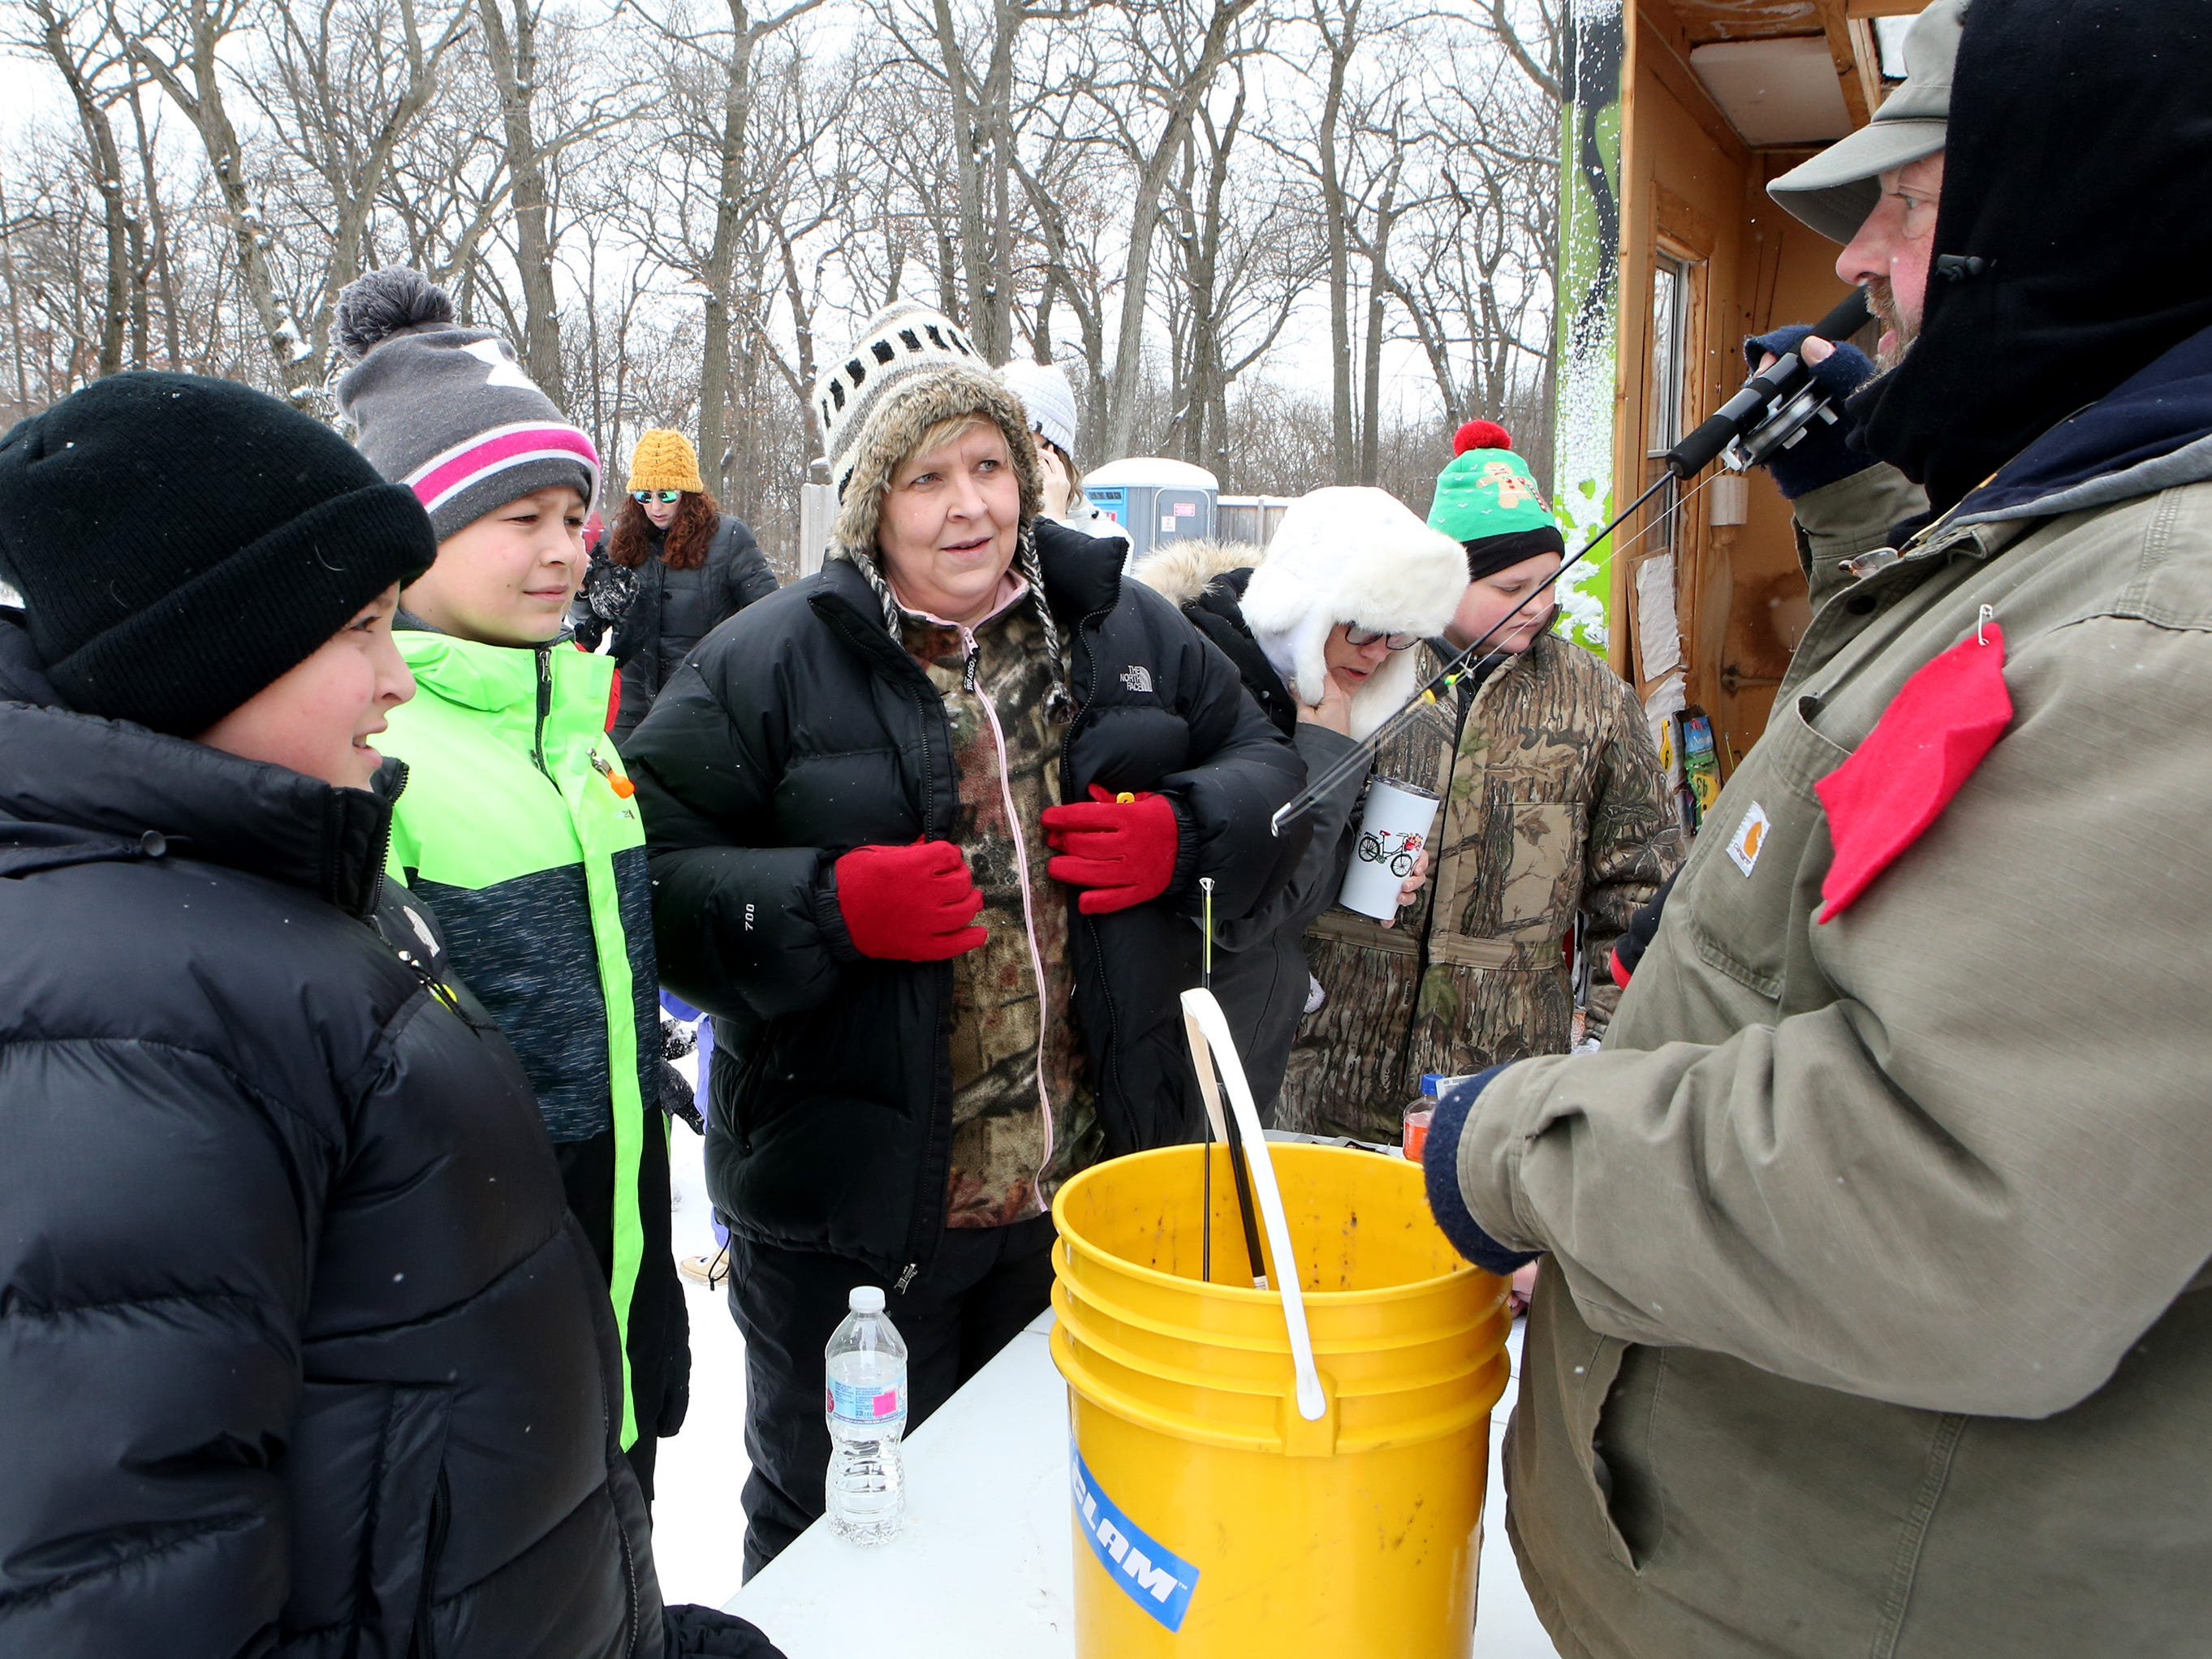 Anthony Chentis shows Austin (left), Landon and Jennifer Garcia of Dousman some ice fishing basics as he loans out a bucket of ice fishing gear on Lower Genesee Lake in Summit during a free instructional ice fishing day hosted by Sons of the Watertown American Legion Post 189 on Jan. 19. The event drew more than 50 children and their attending adults.